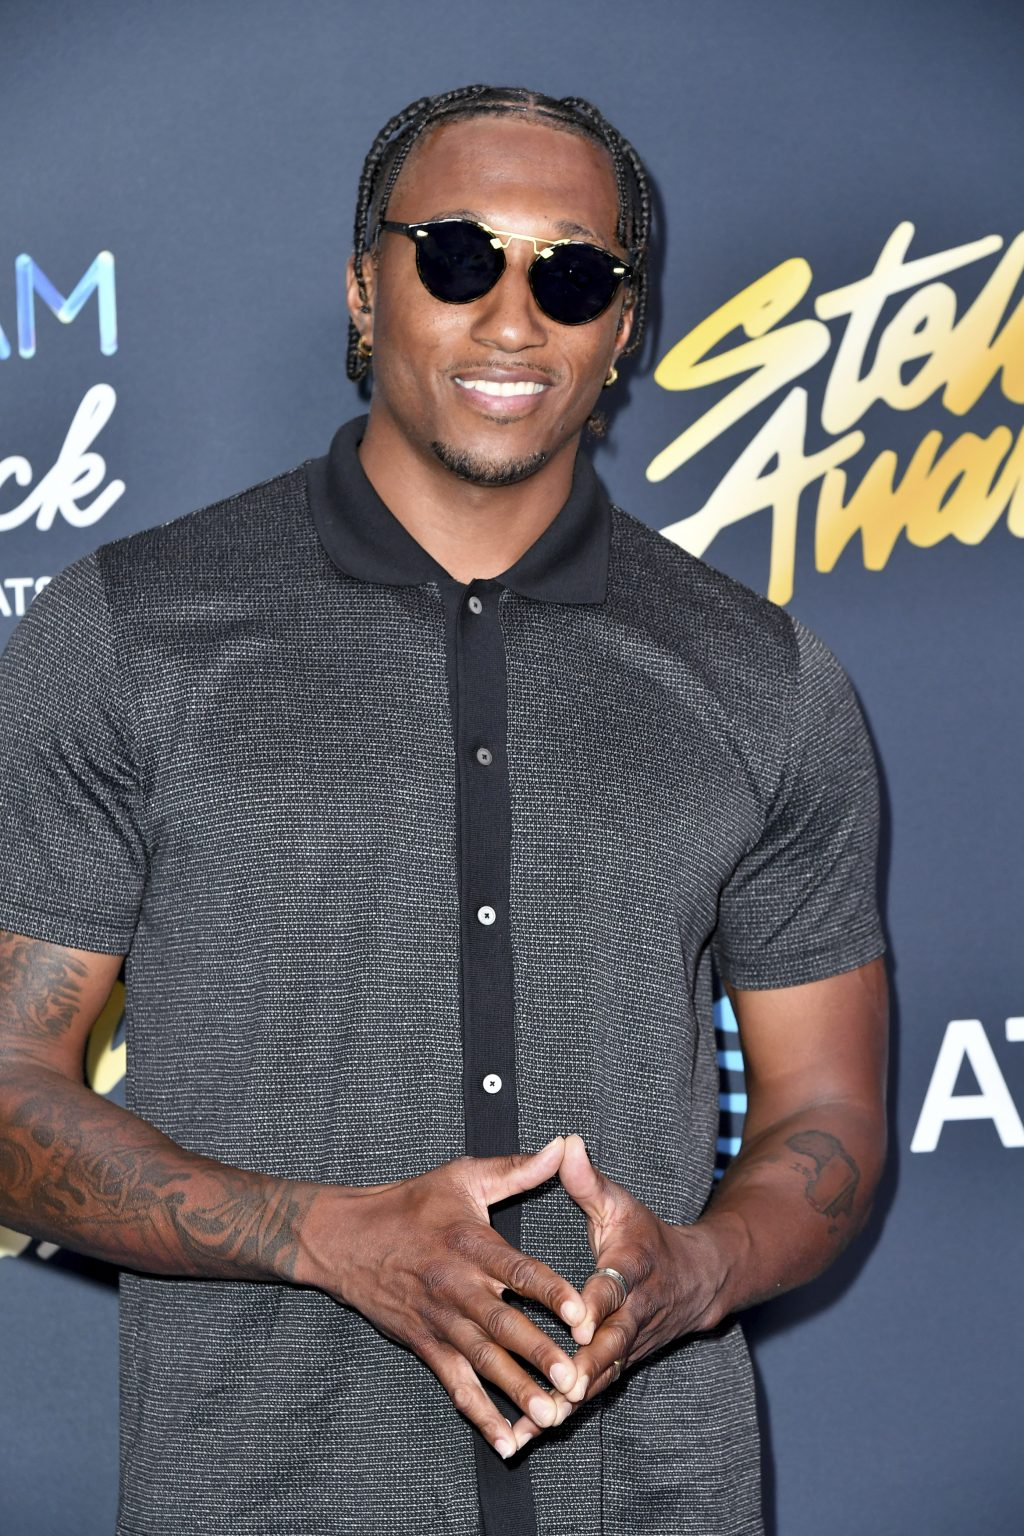 Grammy-Award Winning Artist Lecrae Partners With Experian North America To Talk About The Basics Of Financial Health